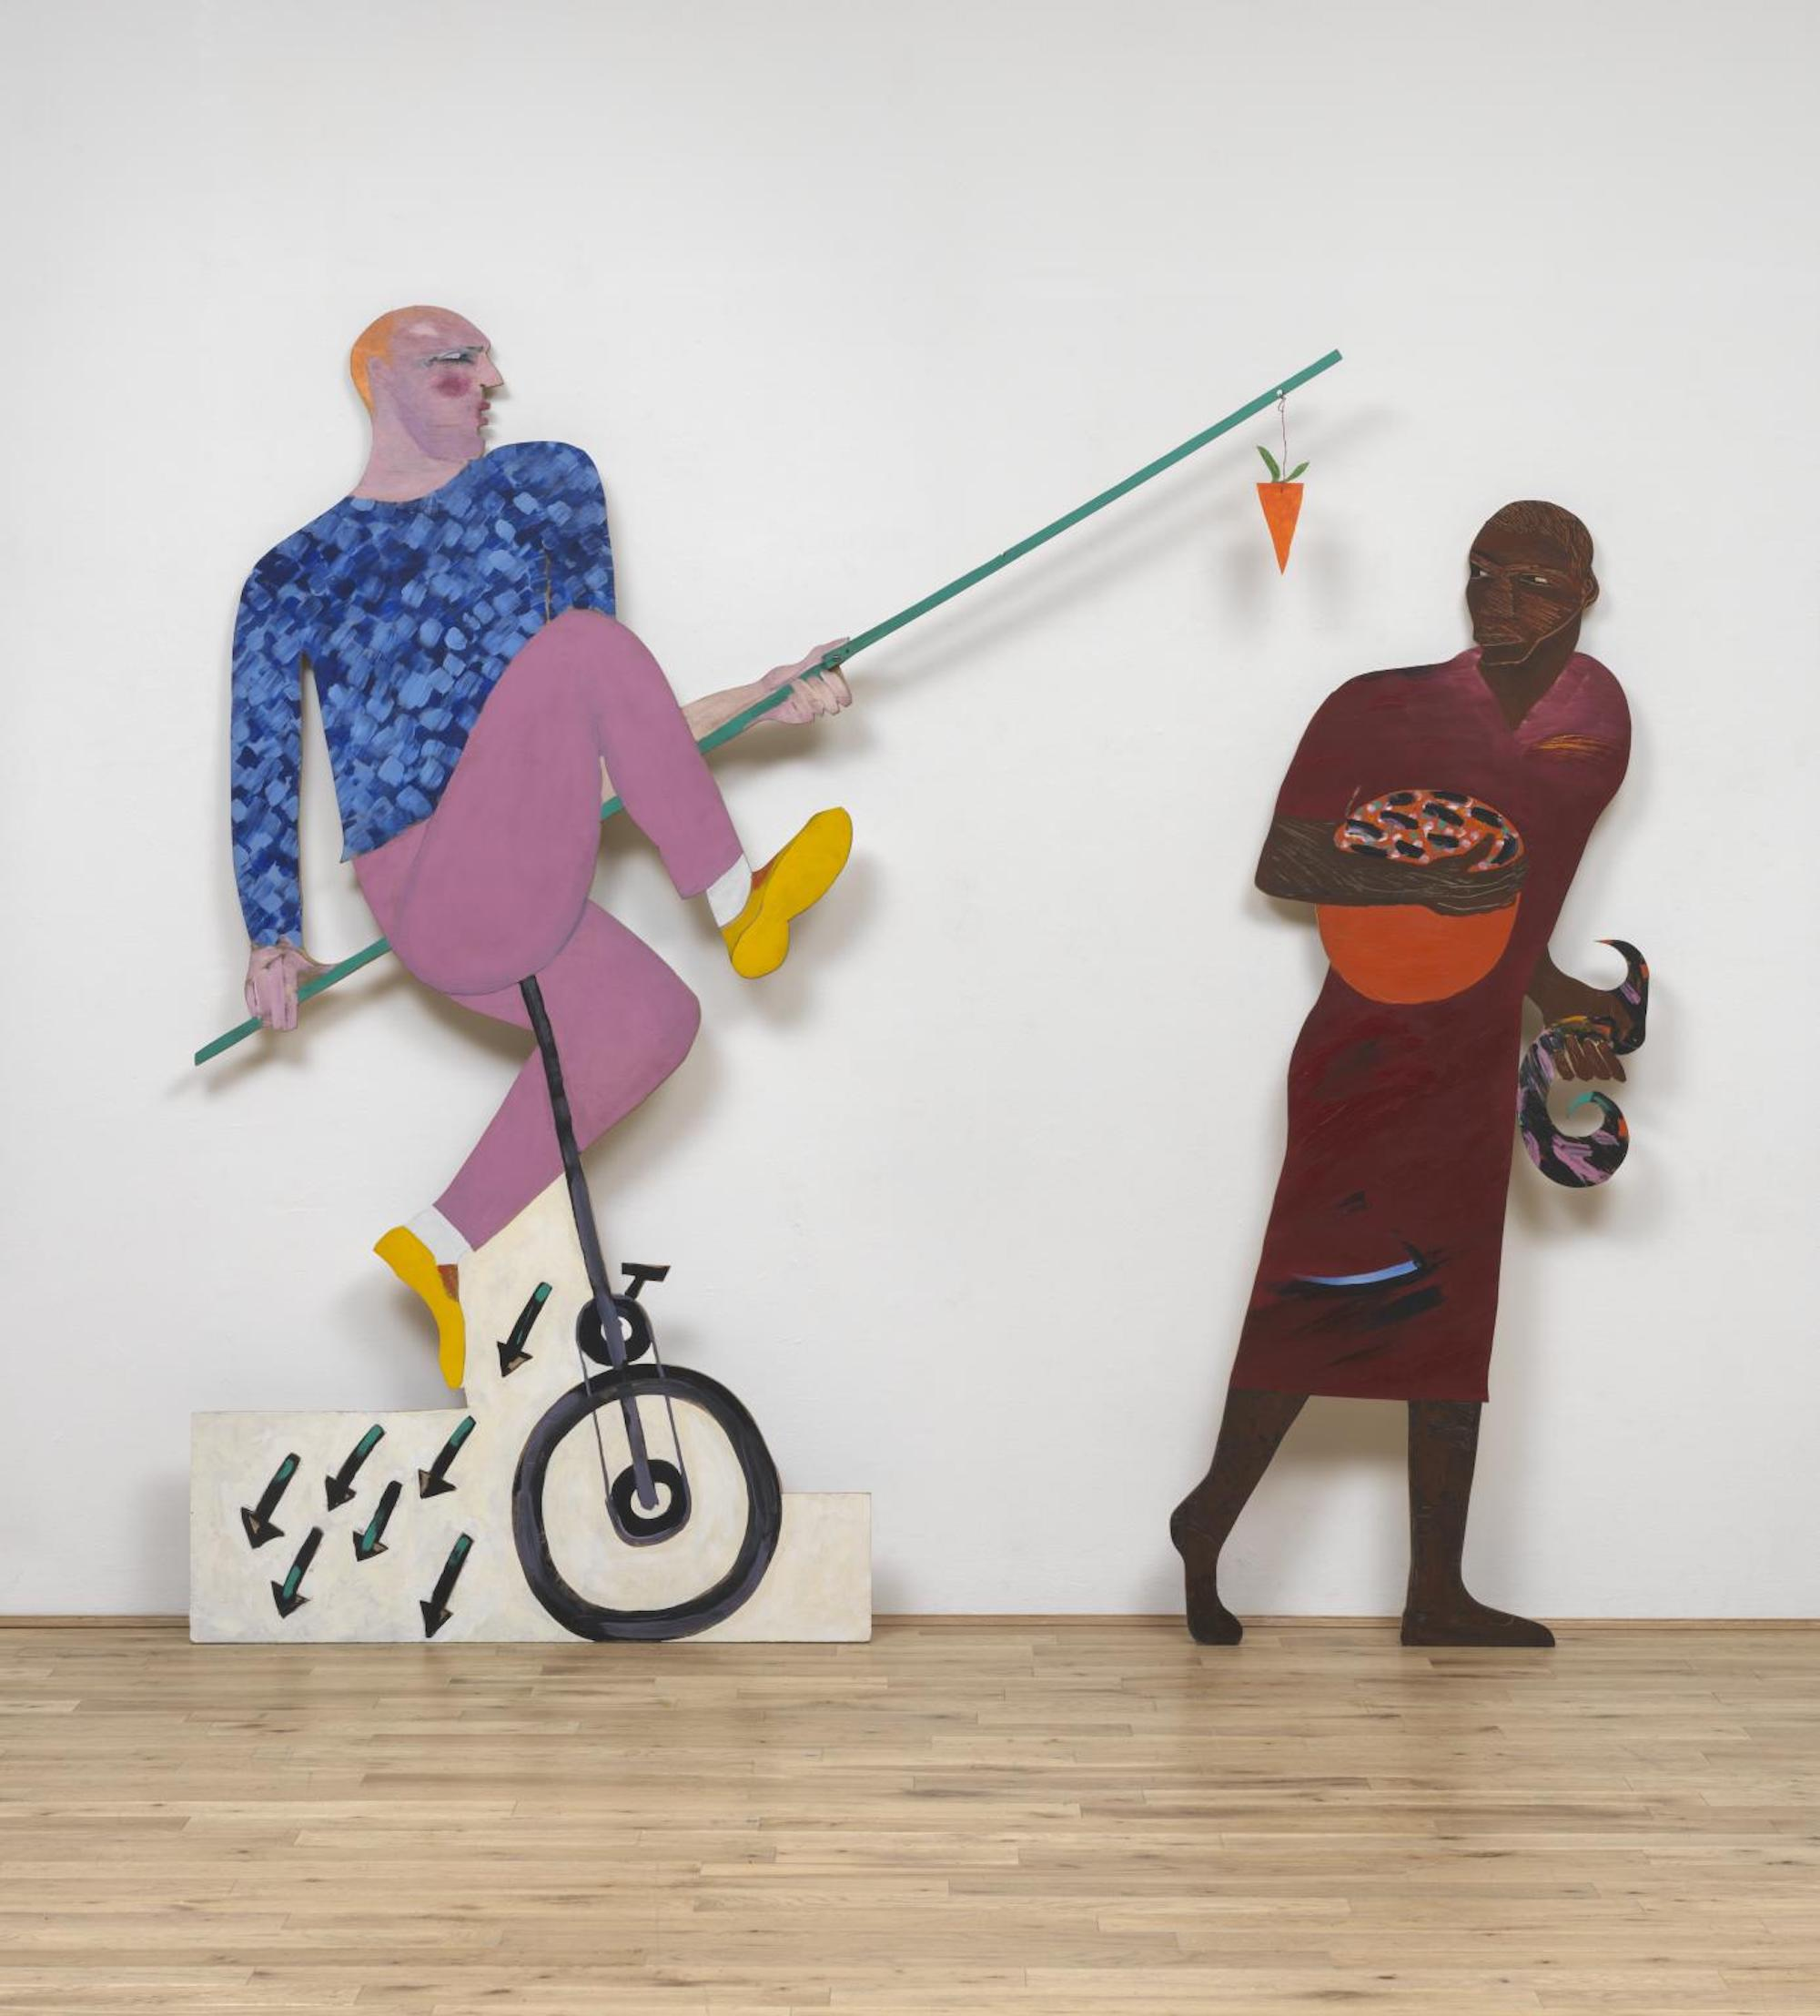 The Carrot Piece 1985 by Lubaina Himid born 1954